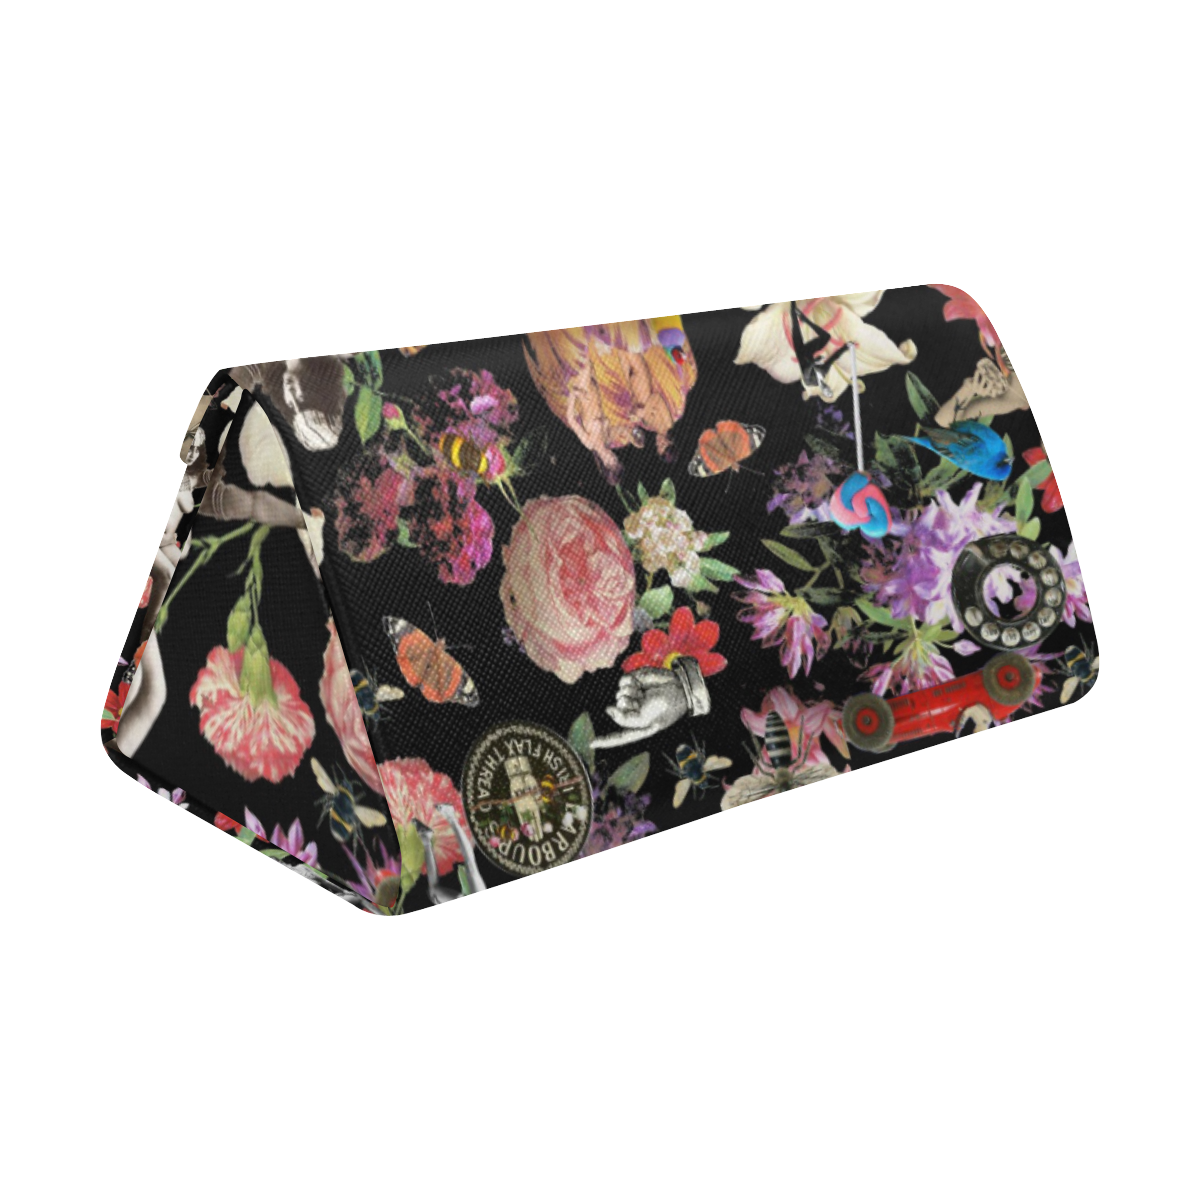 Garden Party Custom Foldable Glasses Case